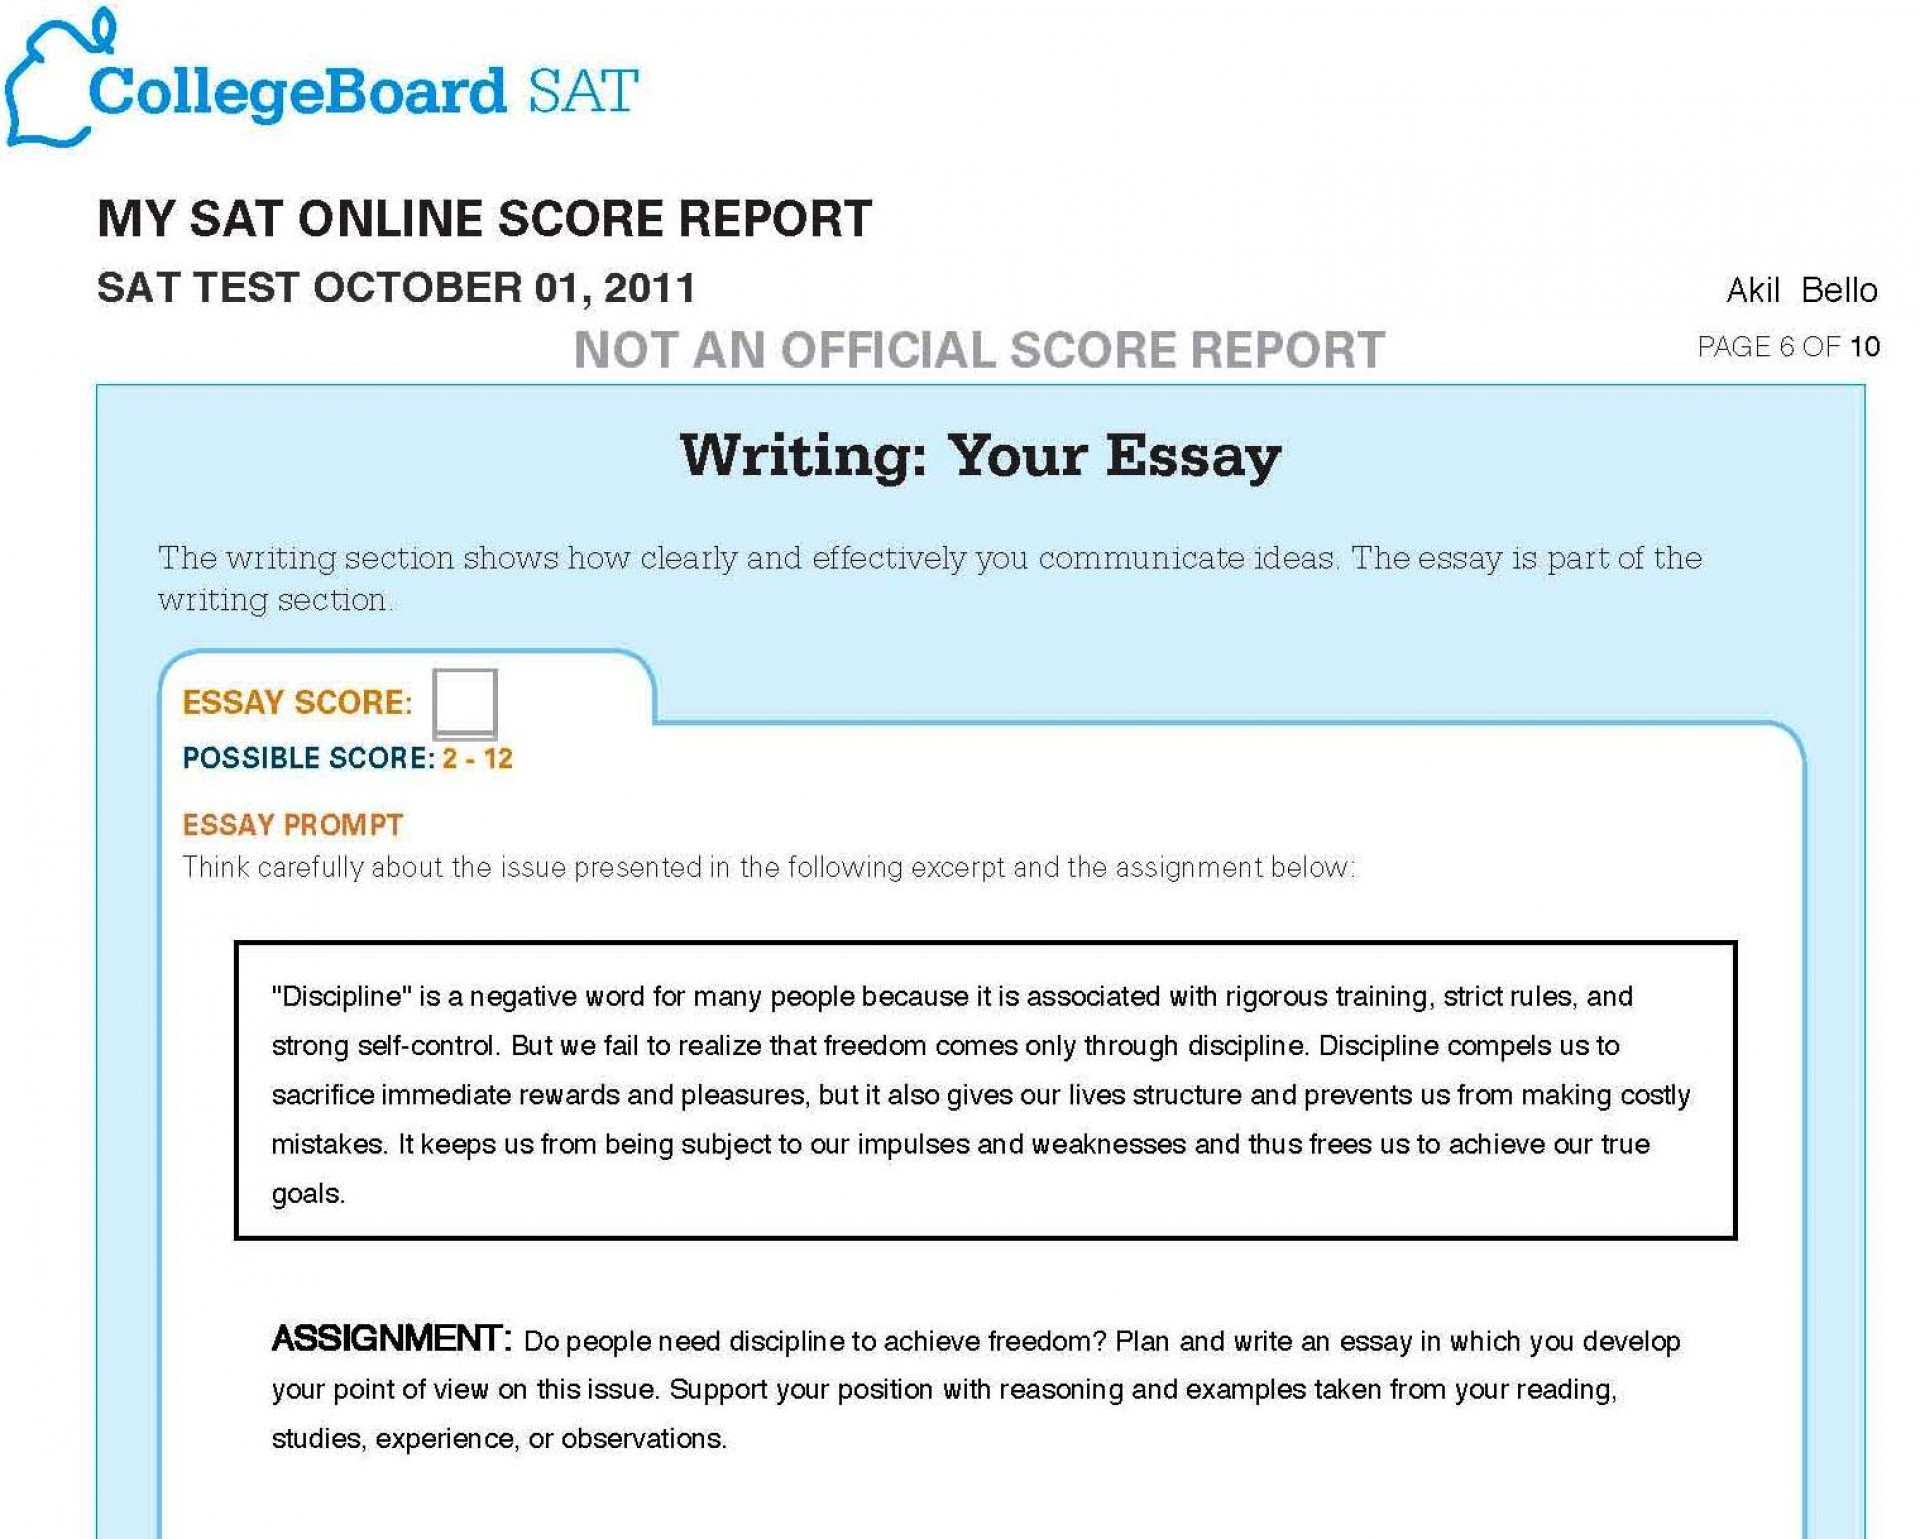 007 Sat Essay Test Writing Promptss Score Range Time Limit Format Sample Percentiles Tips Stunning 2018 2017 1920